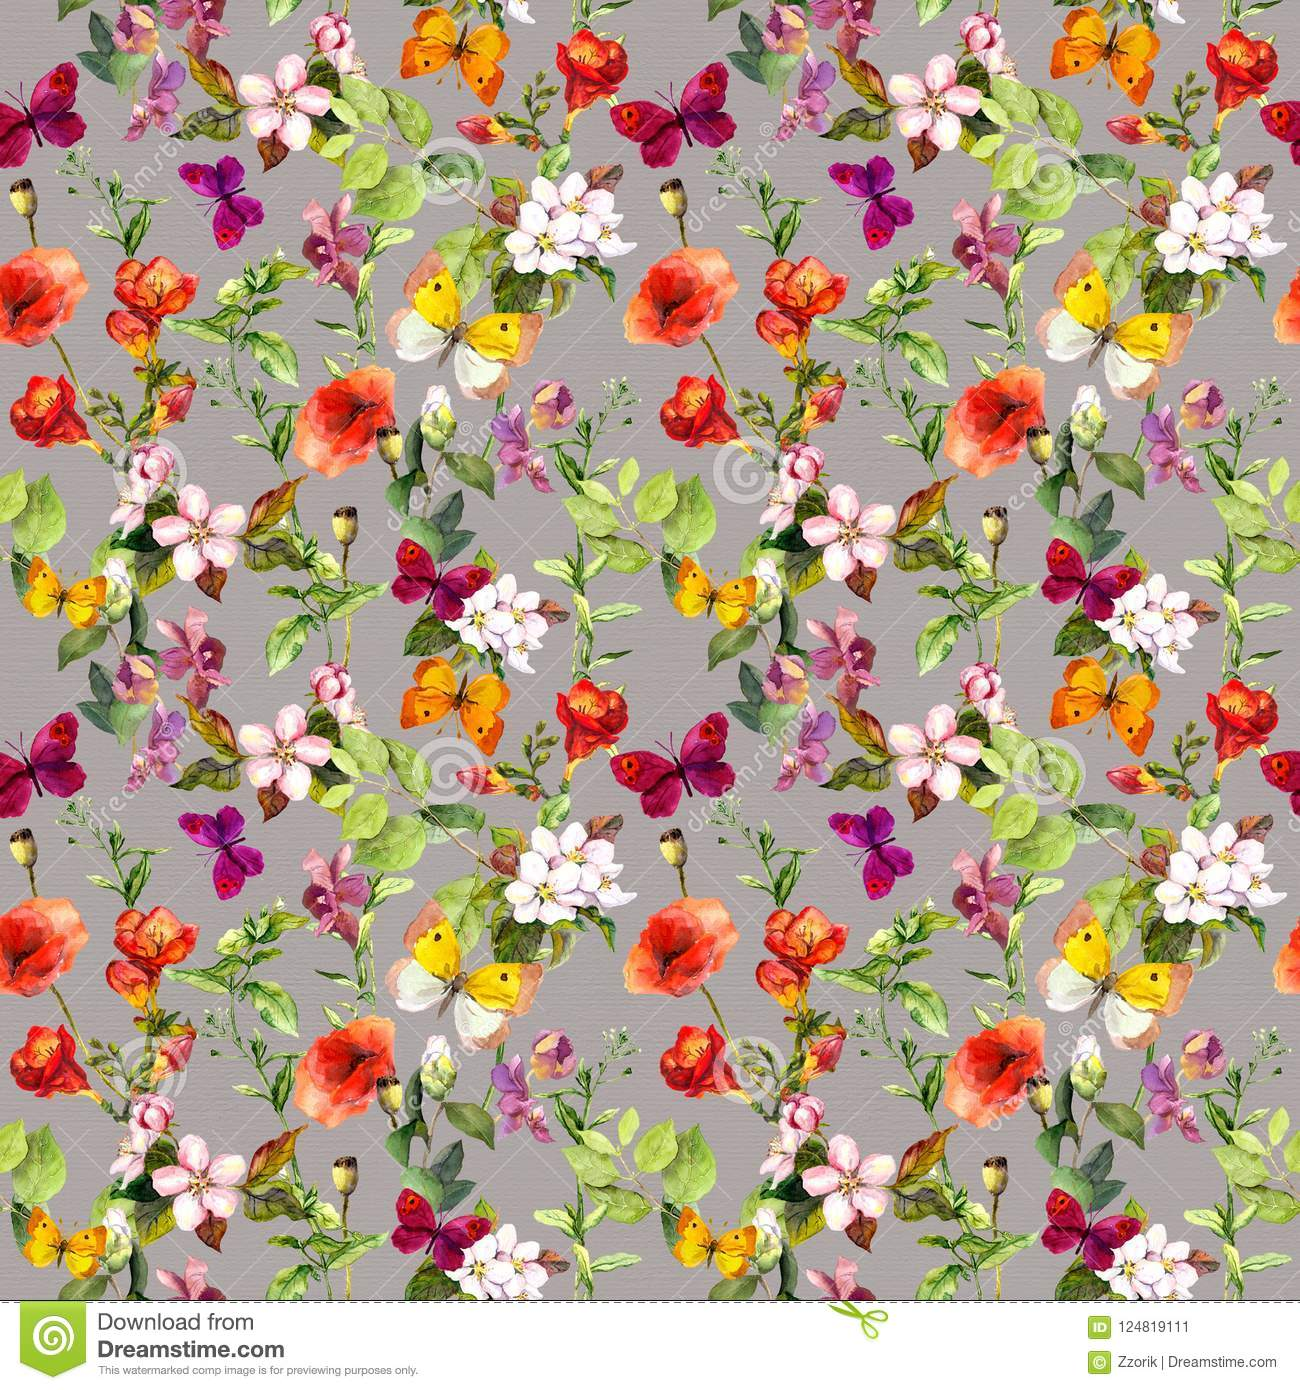 2015 Ditsy Floral Design: Meadow Flowers And Butterflies Repeating Pattern